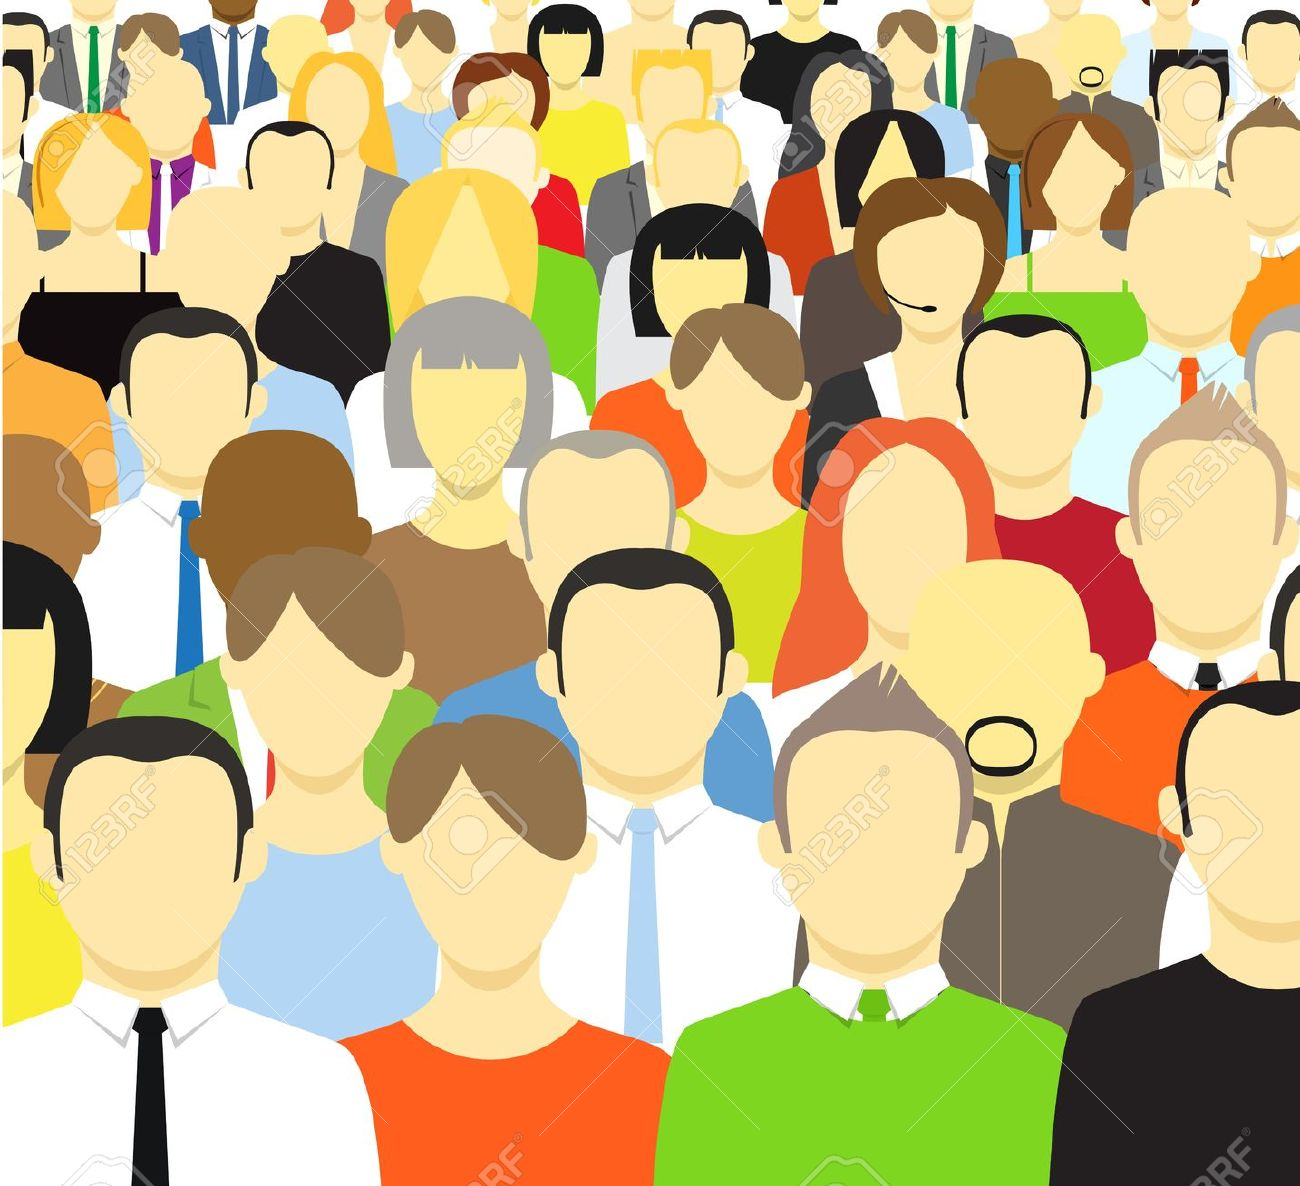 Crowd people clipart picture black and white download Crowd of people clipart 7 » Clipart Station picture black and white download